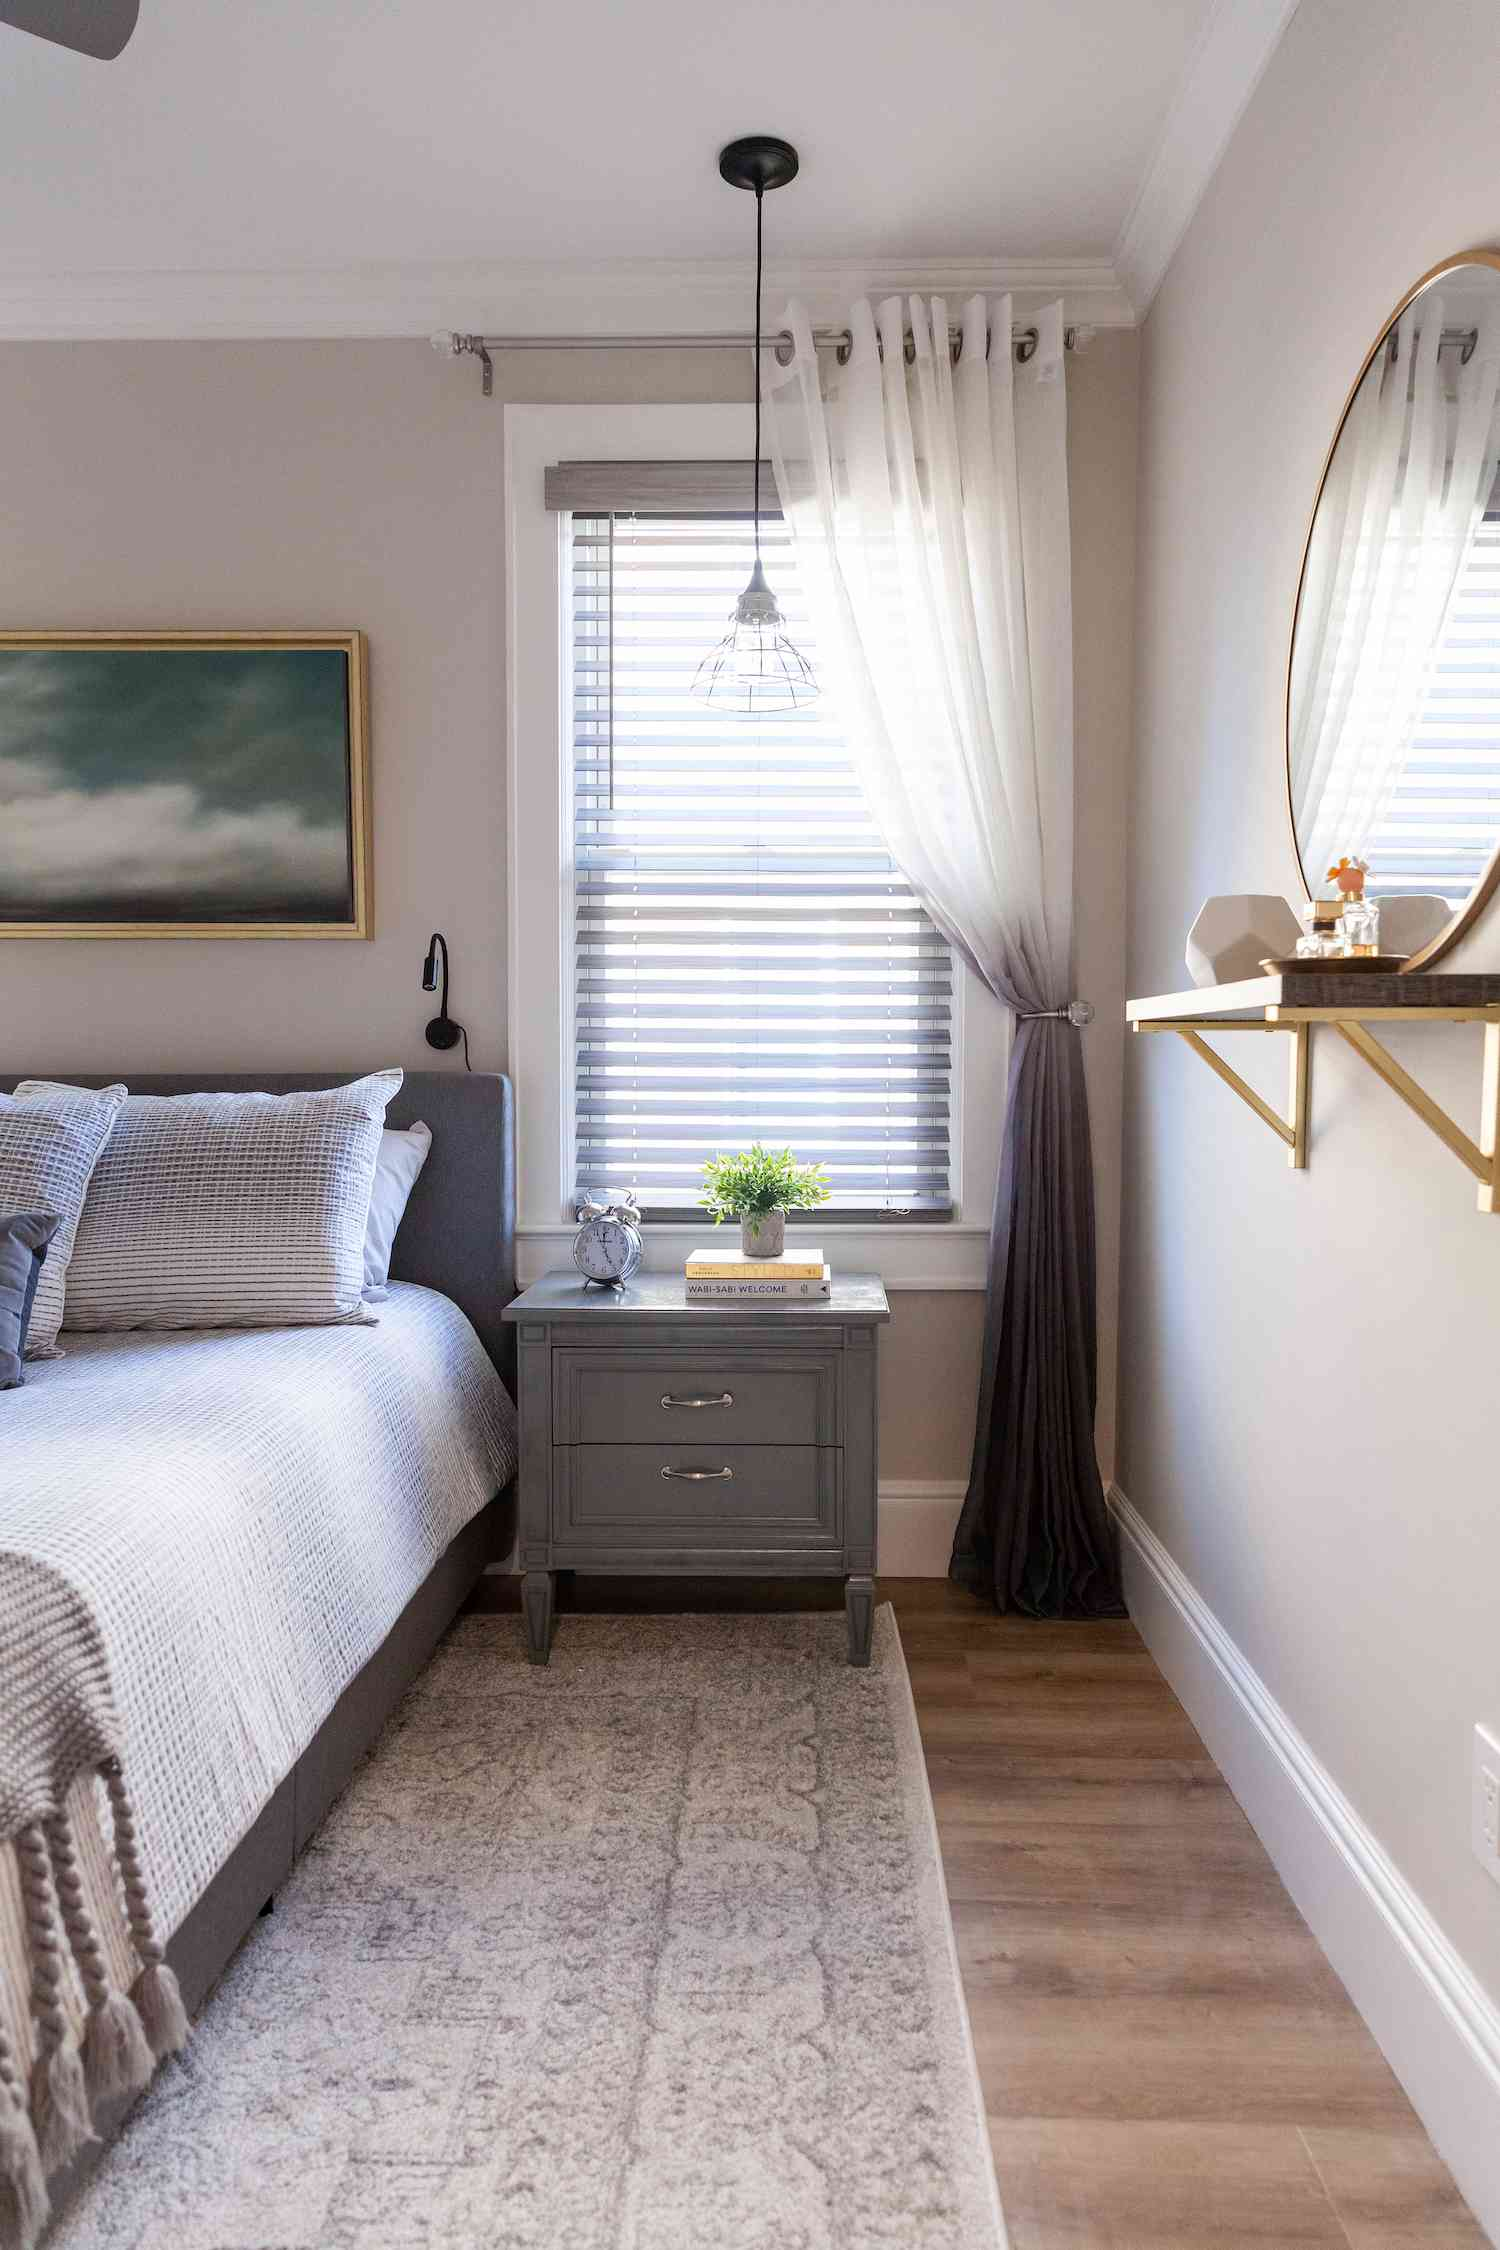 Bedroom painted with Light Pewter paint